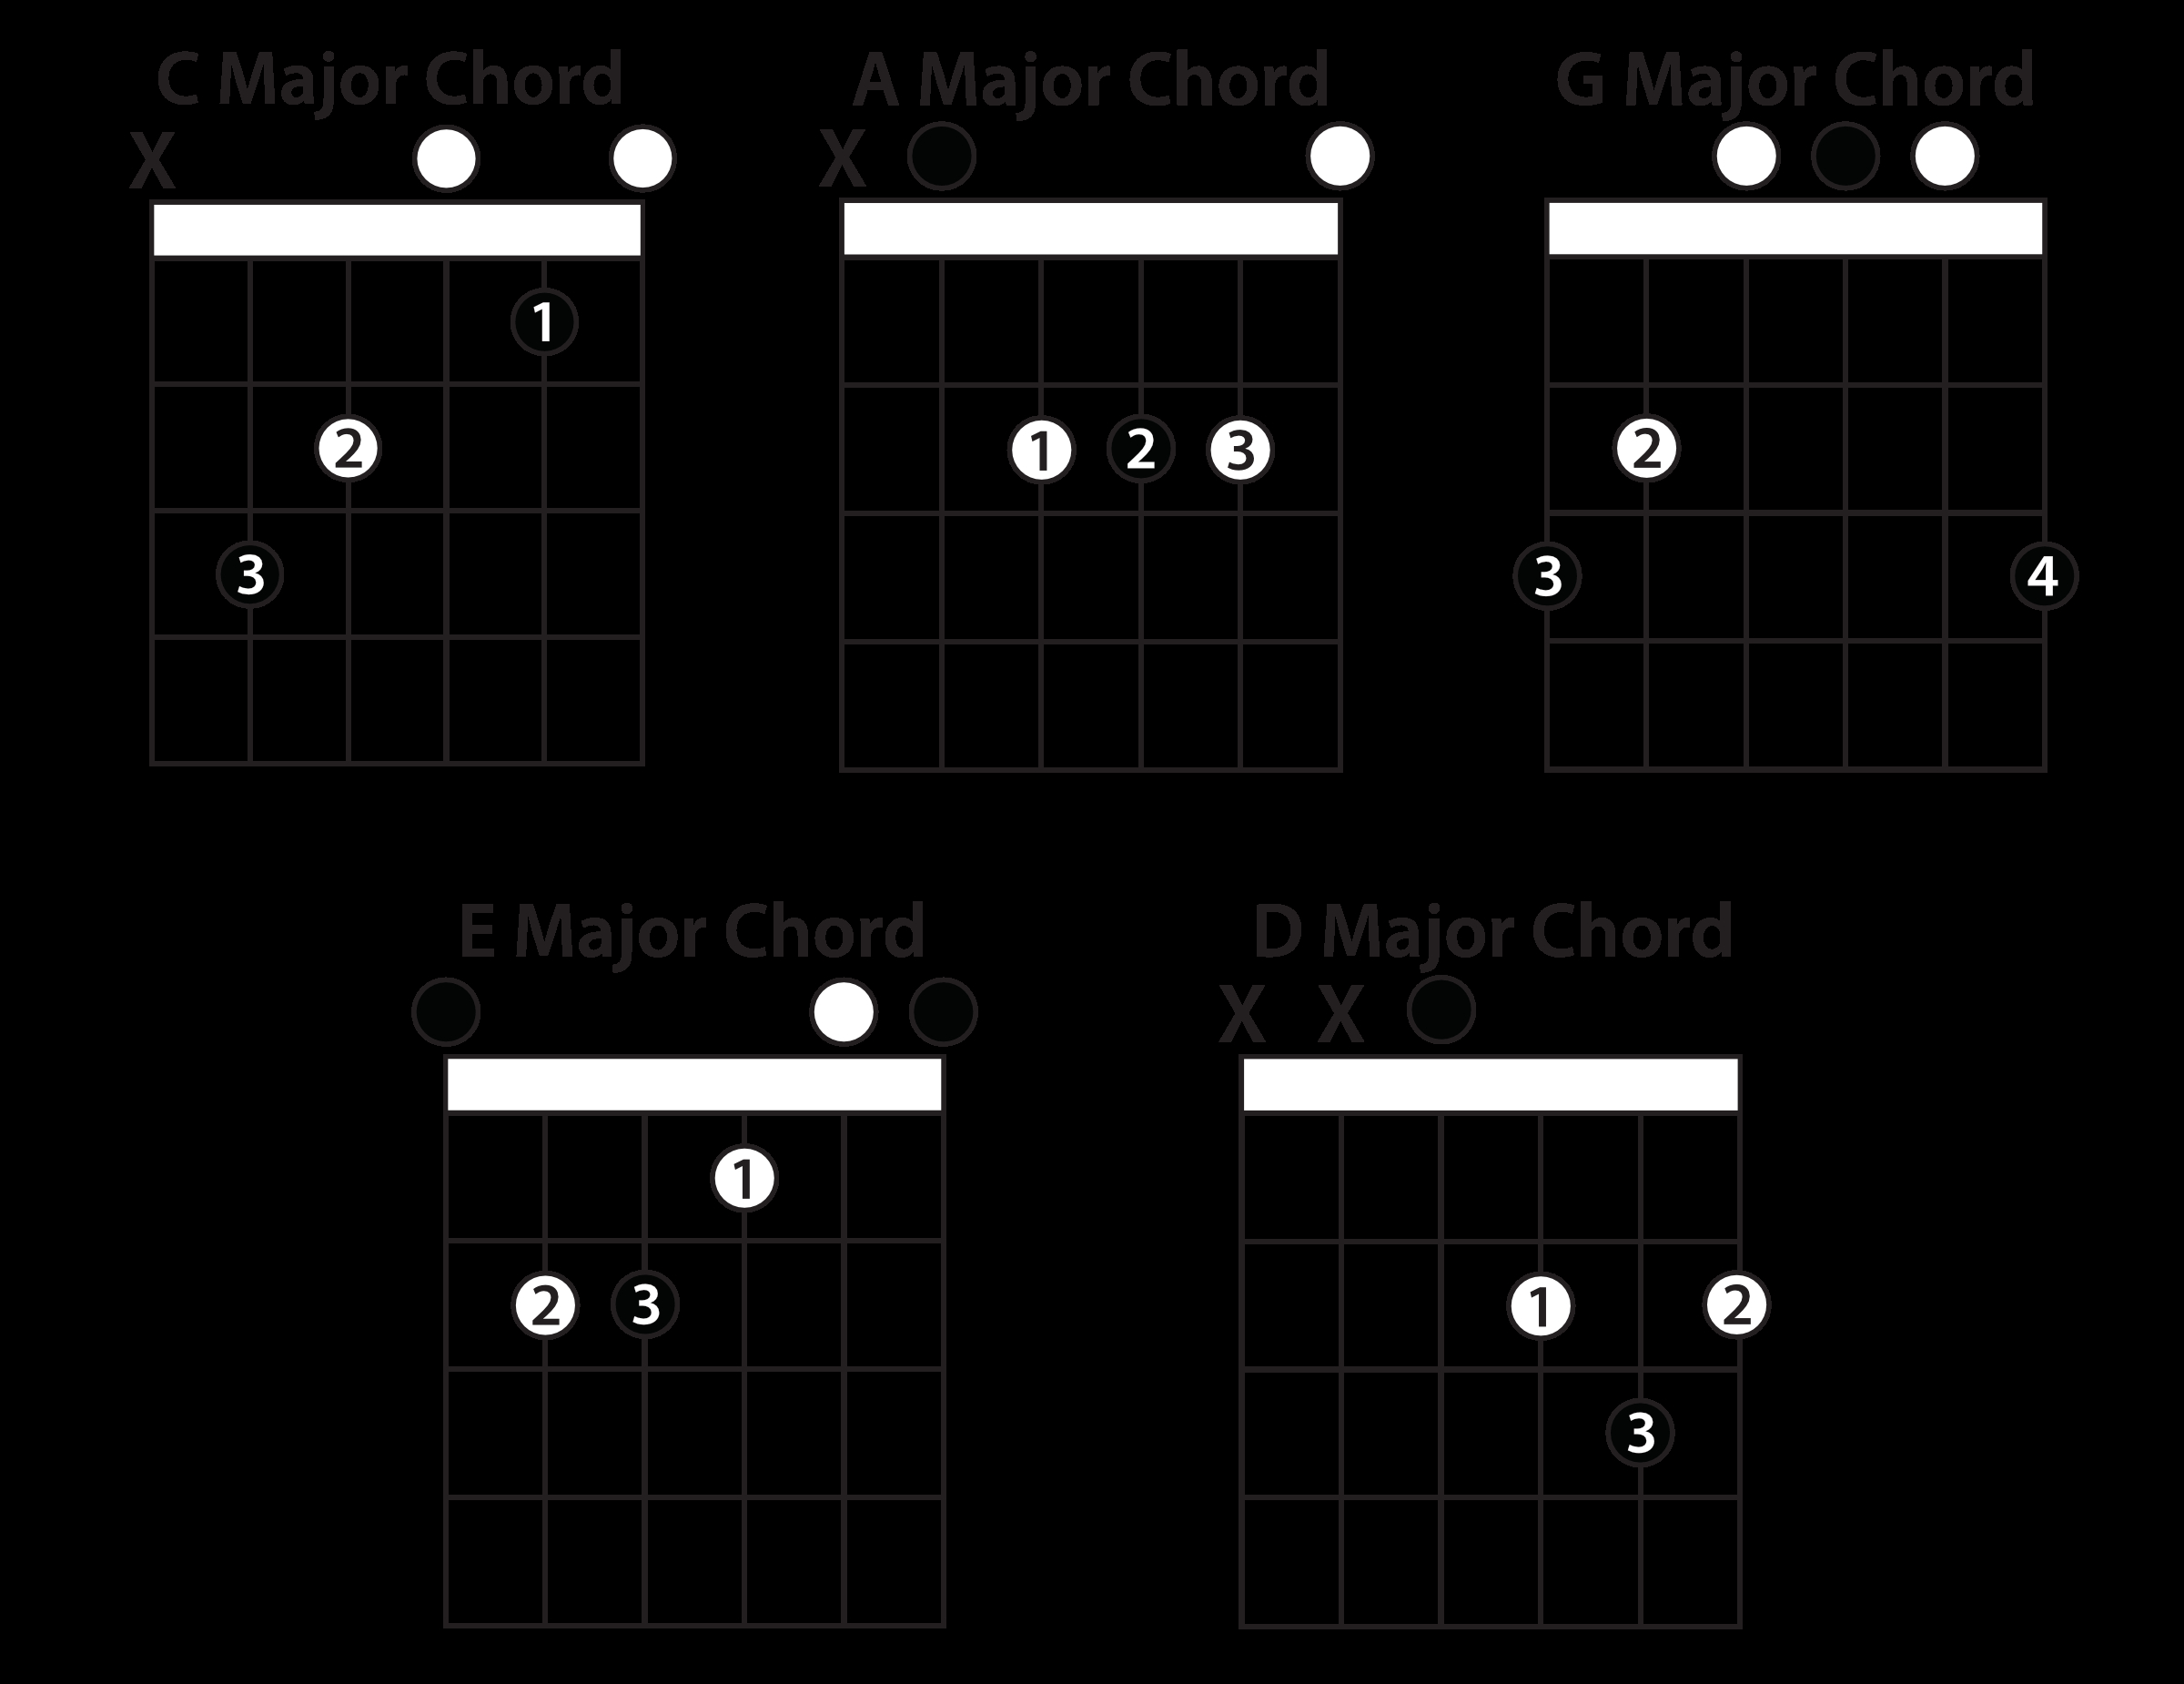 Count On Me Chords How To Play The C Major Chord On Guitar Unmistakable Count On Me